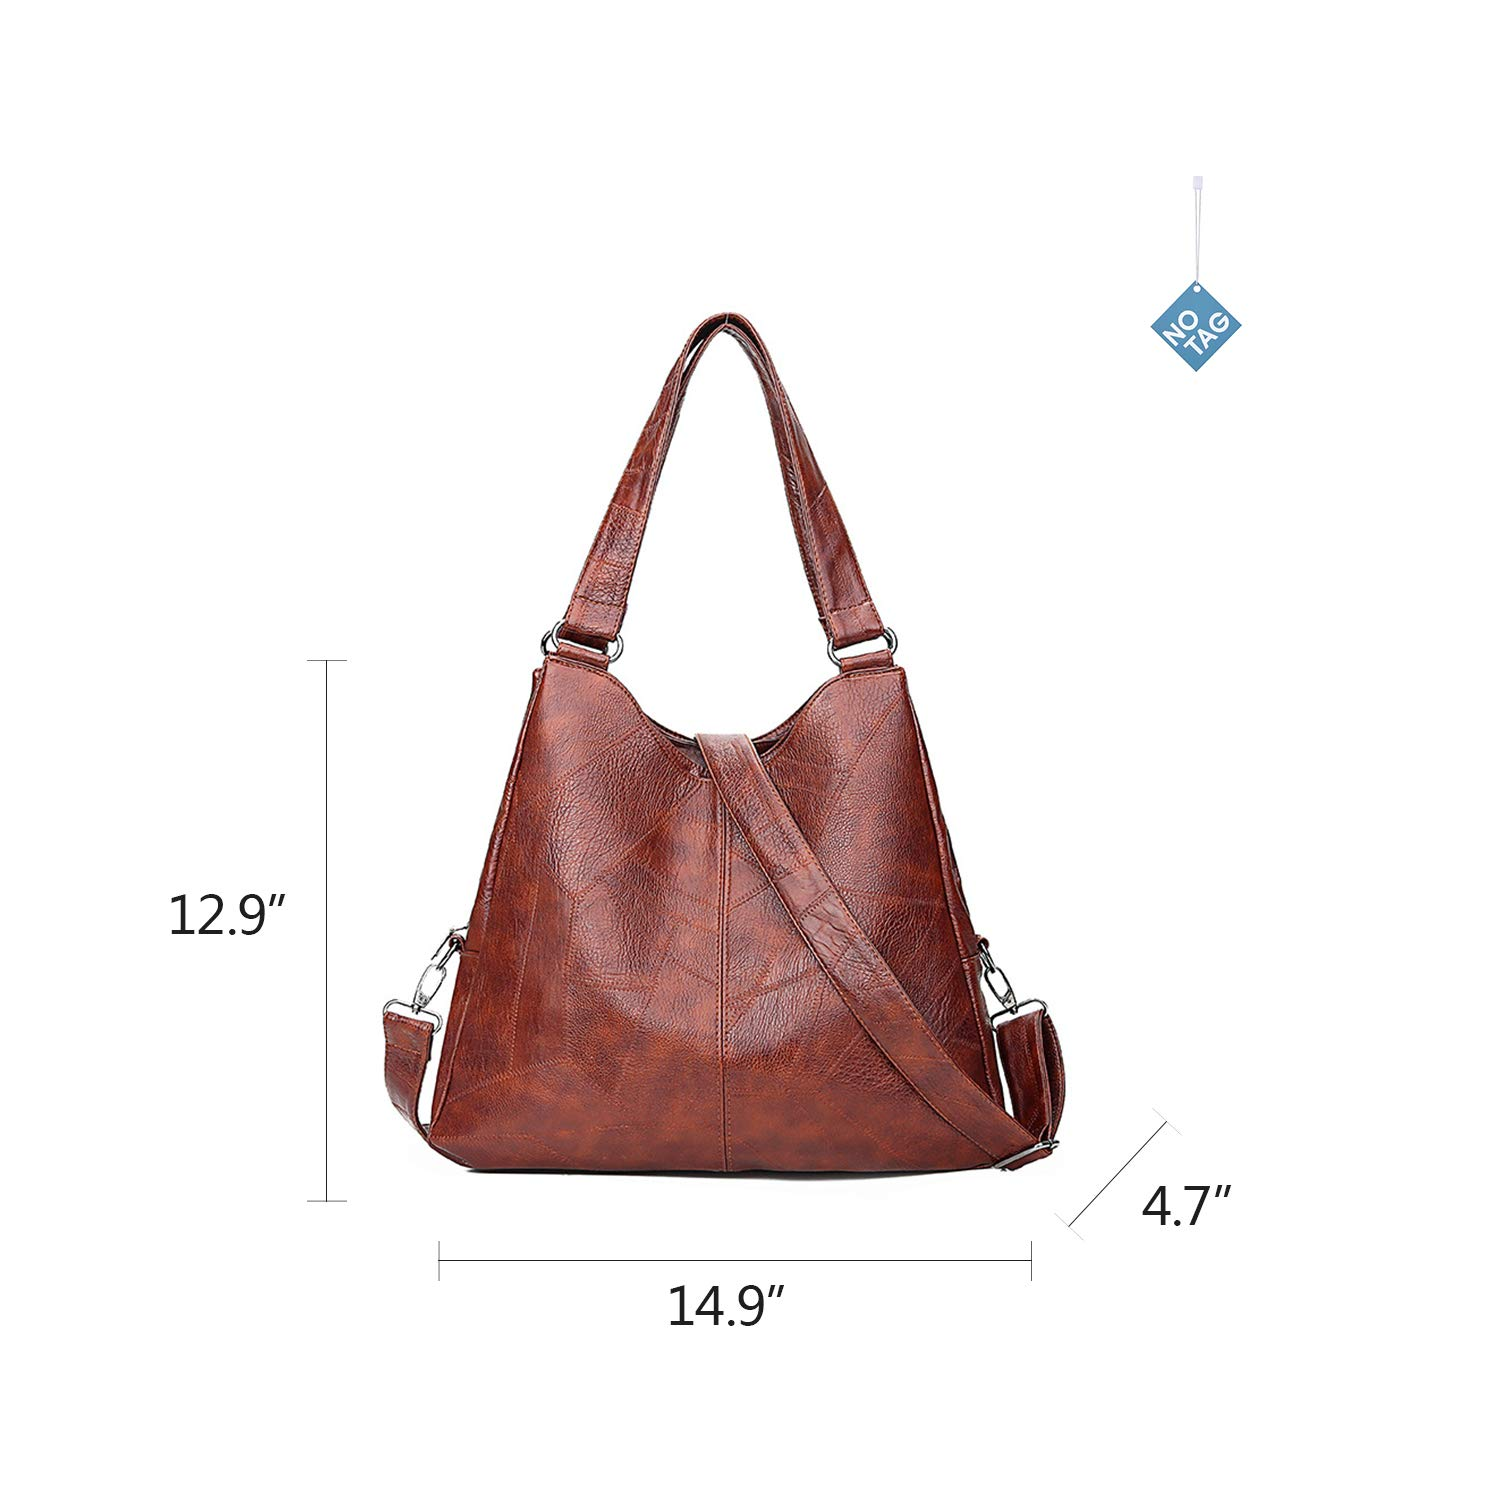 9dbae6690740 Amazon.com: NOTAG Leather Hobo Bags for Women Large Shoulder Bags ...